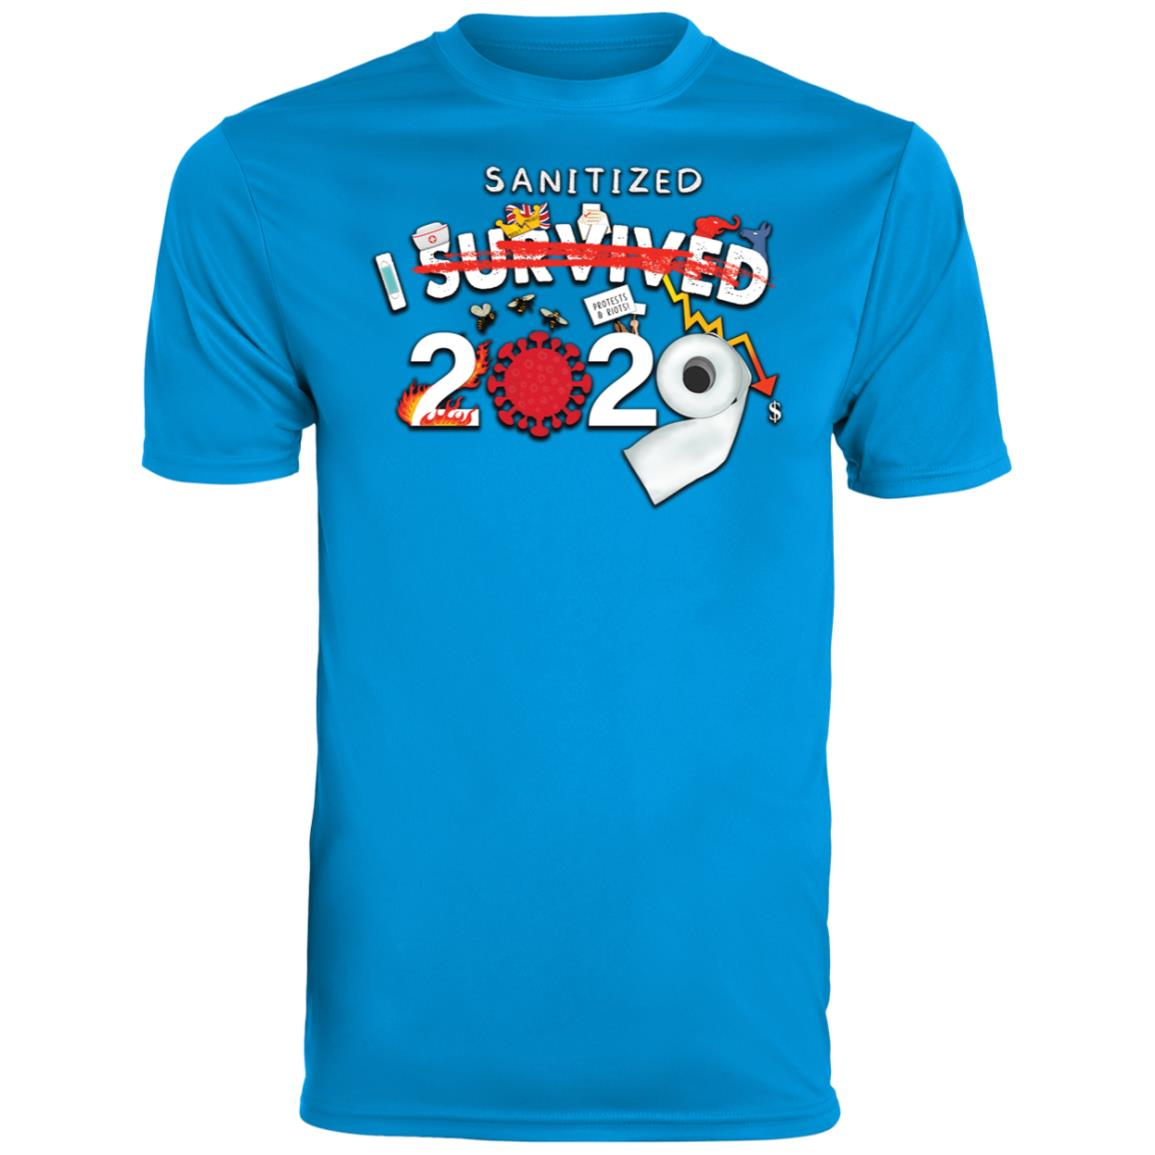 I Sanitized 2020 - Youth Wicking T-Shirt